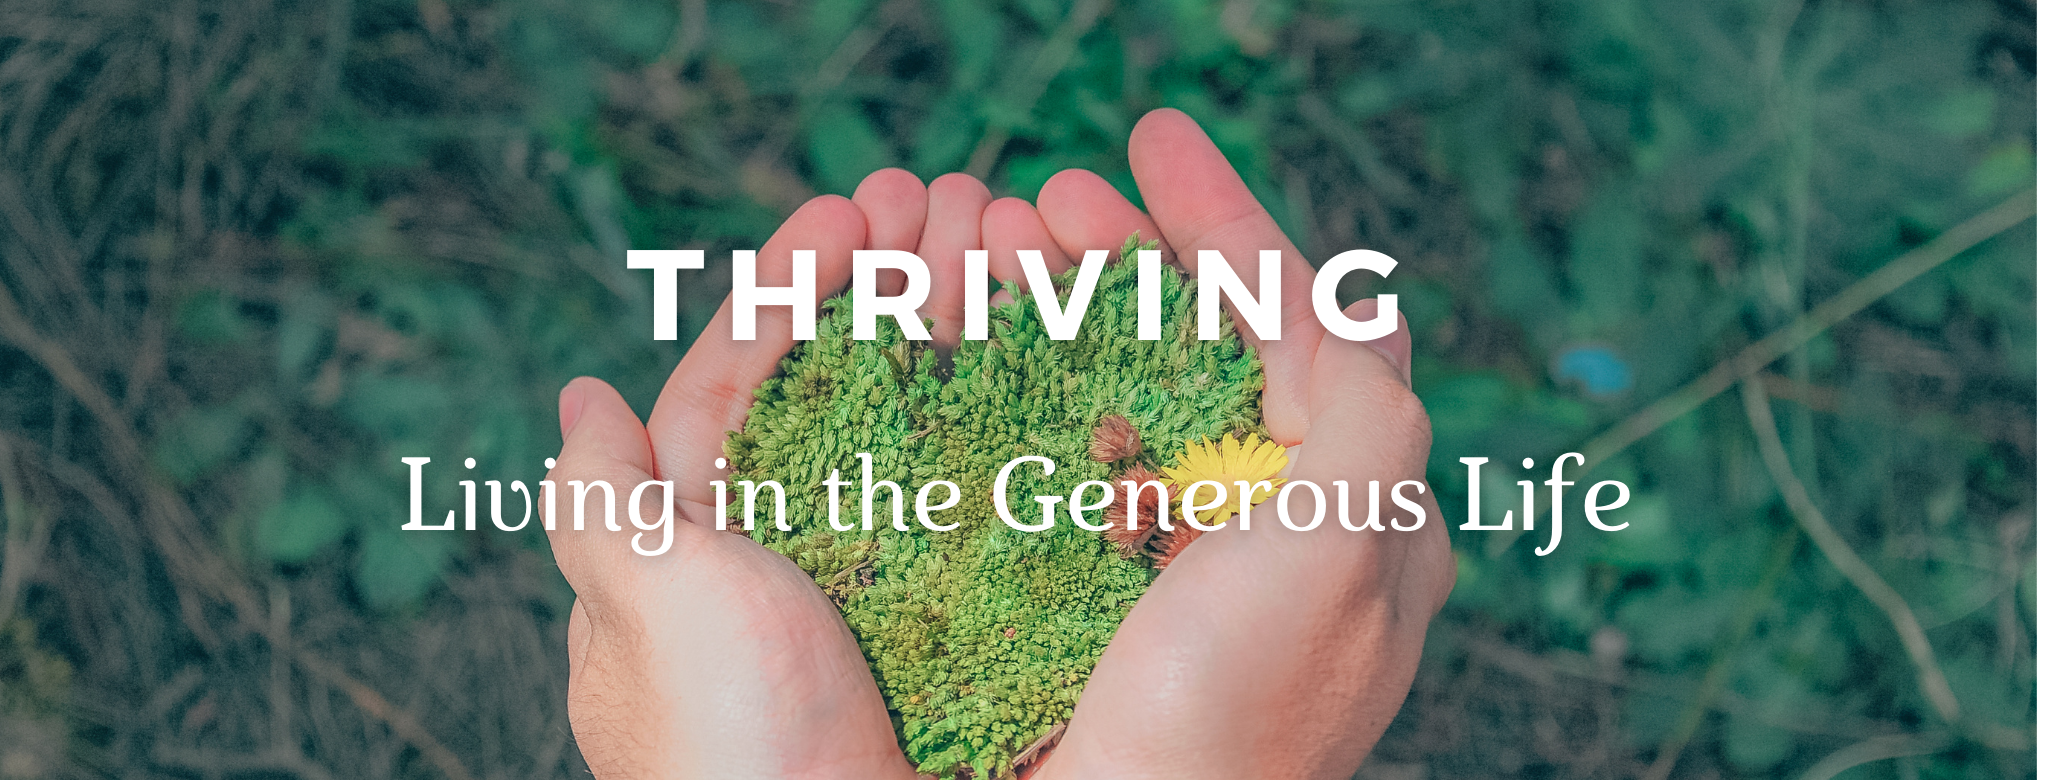 Thriving: Living in the Generous Life - October 2020